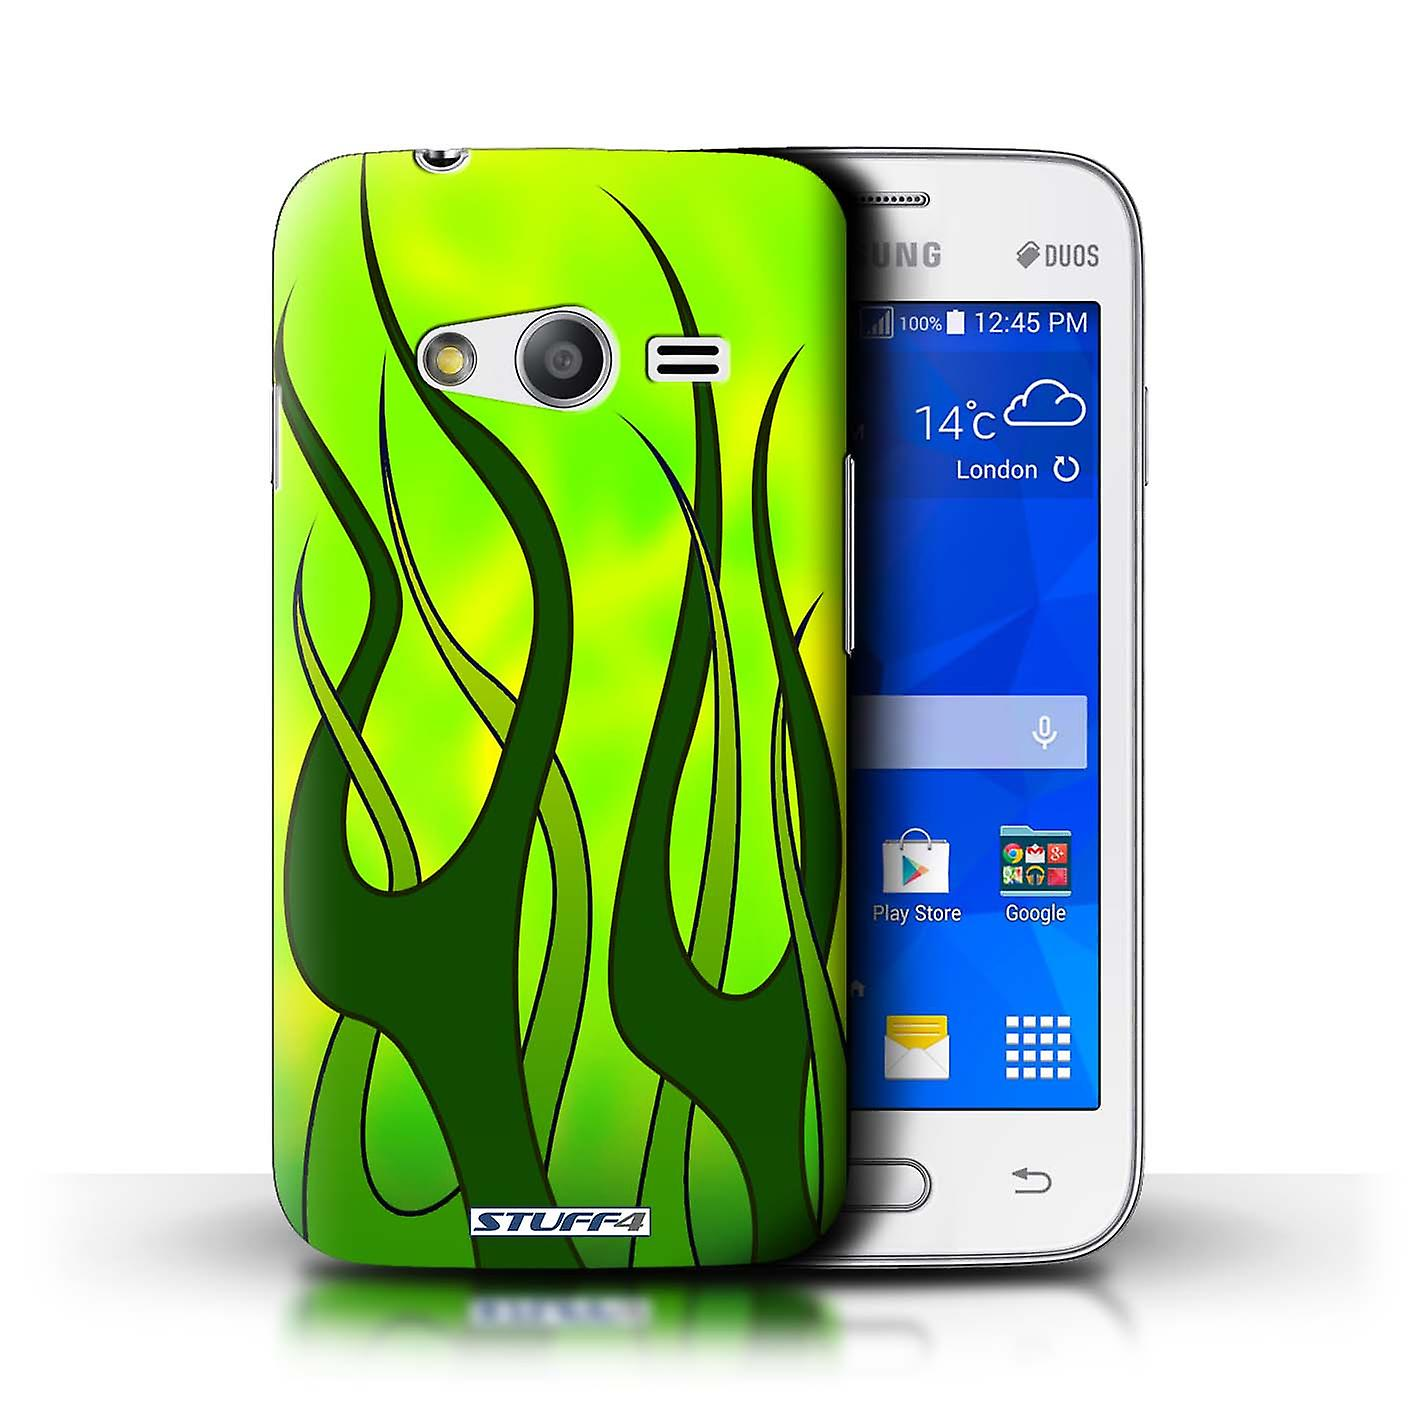 STUFF4 Case/Cover For Samsung Galaxy Trend Neo/G313/Green